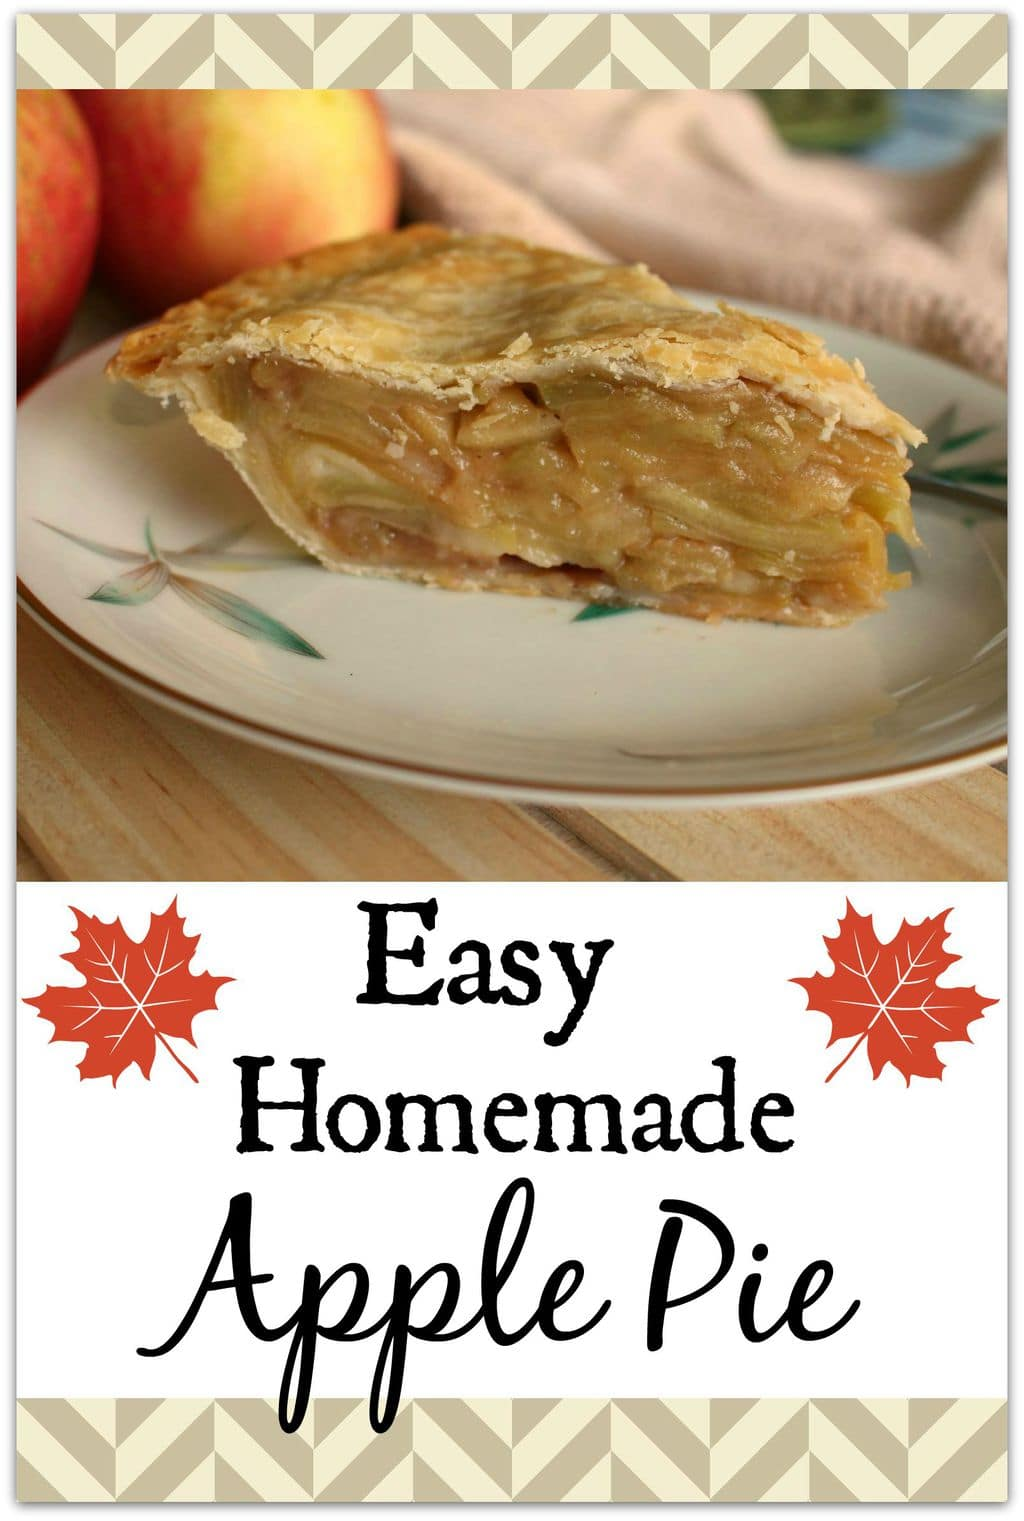 This recipe for easy homemade apple pie really is simple! Head to the kitchen with the kids to peel and slice those apples, and make a party out of it! You'll all be glad you did when you have this delicious dessert recipe for after dinner! My kids even eat it for breakfast!